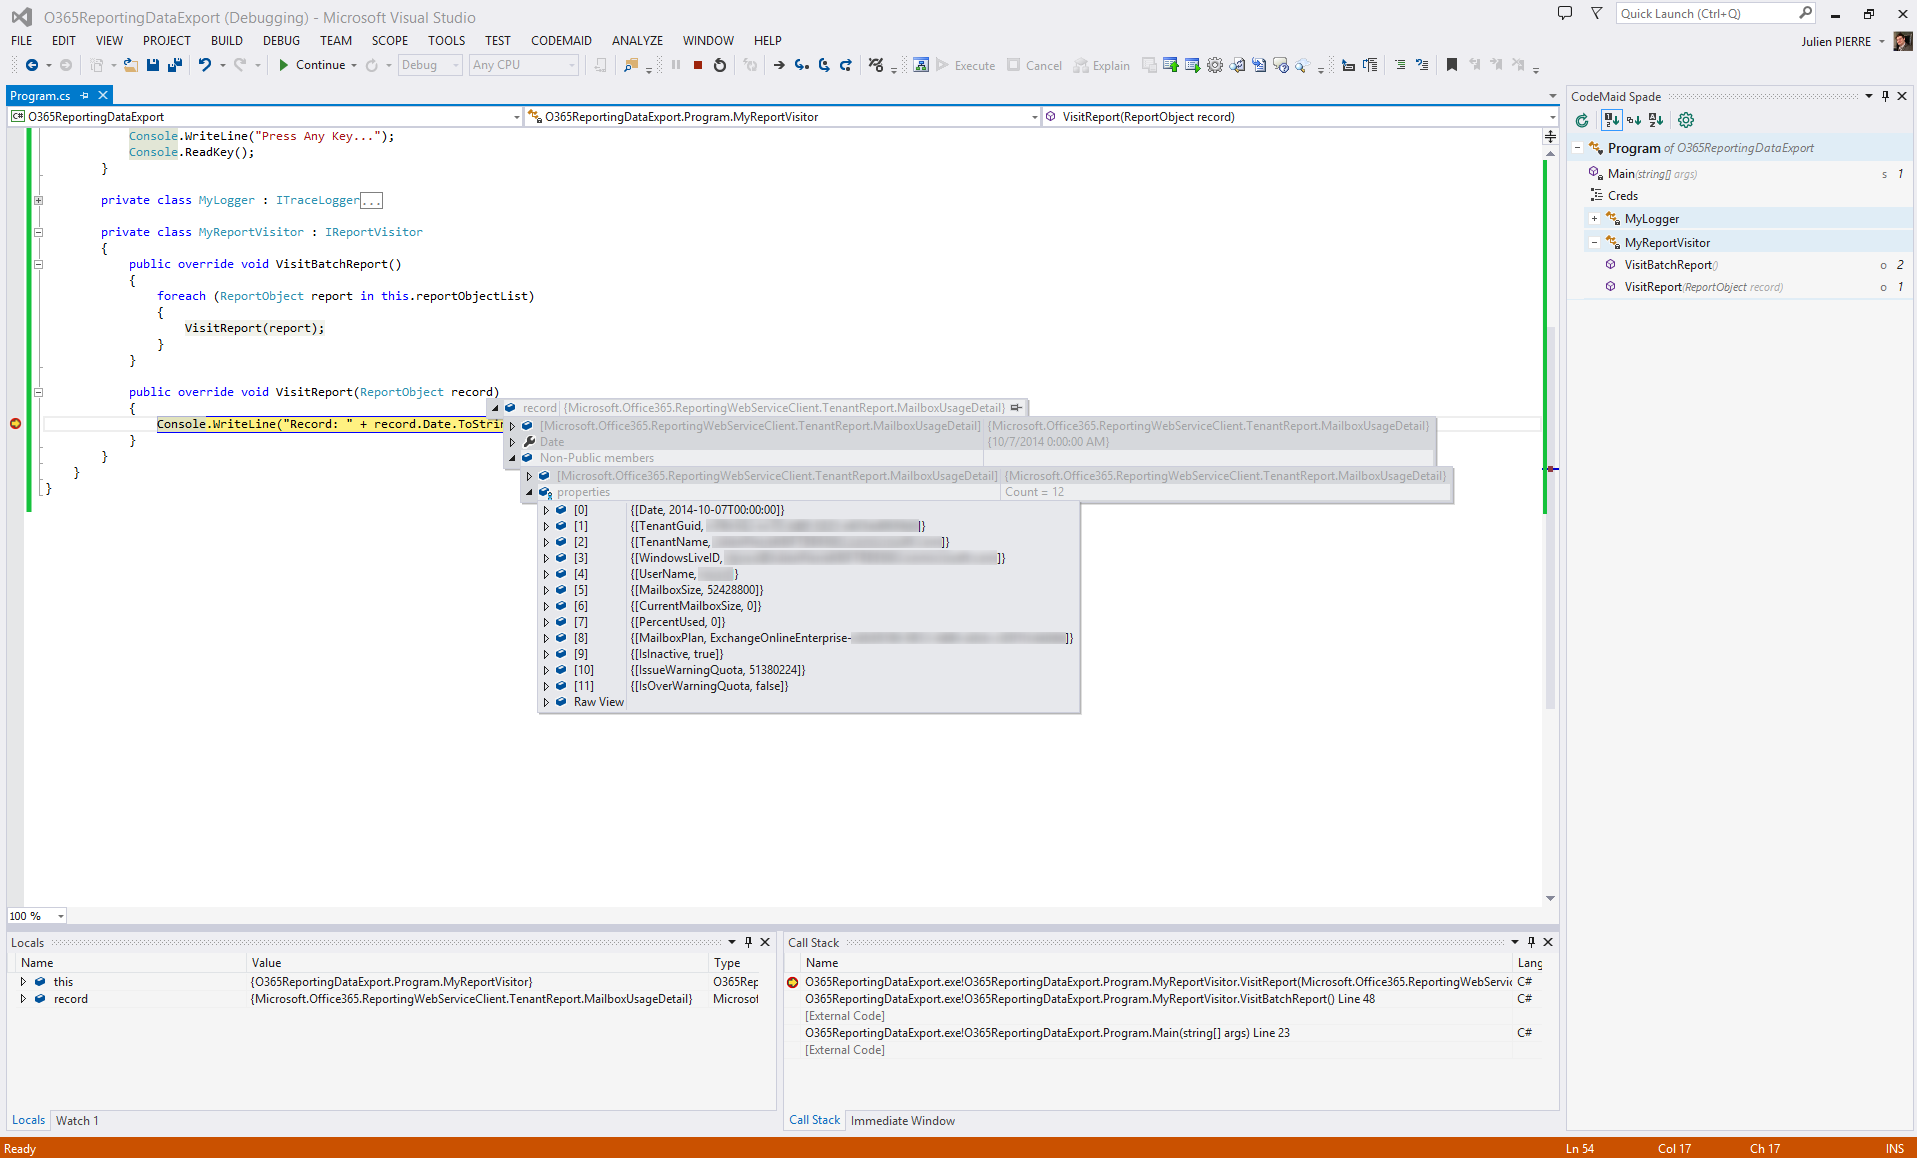 Client library for Office 365 3